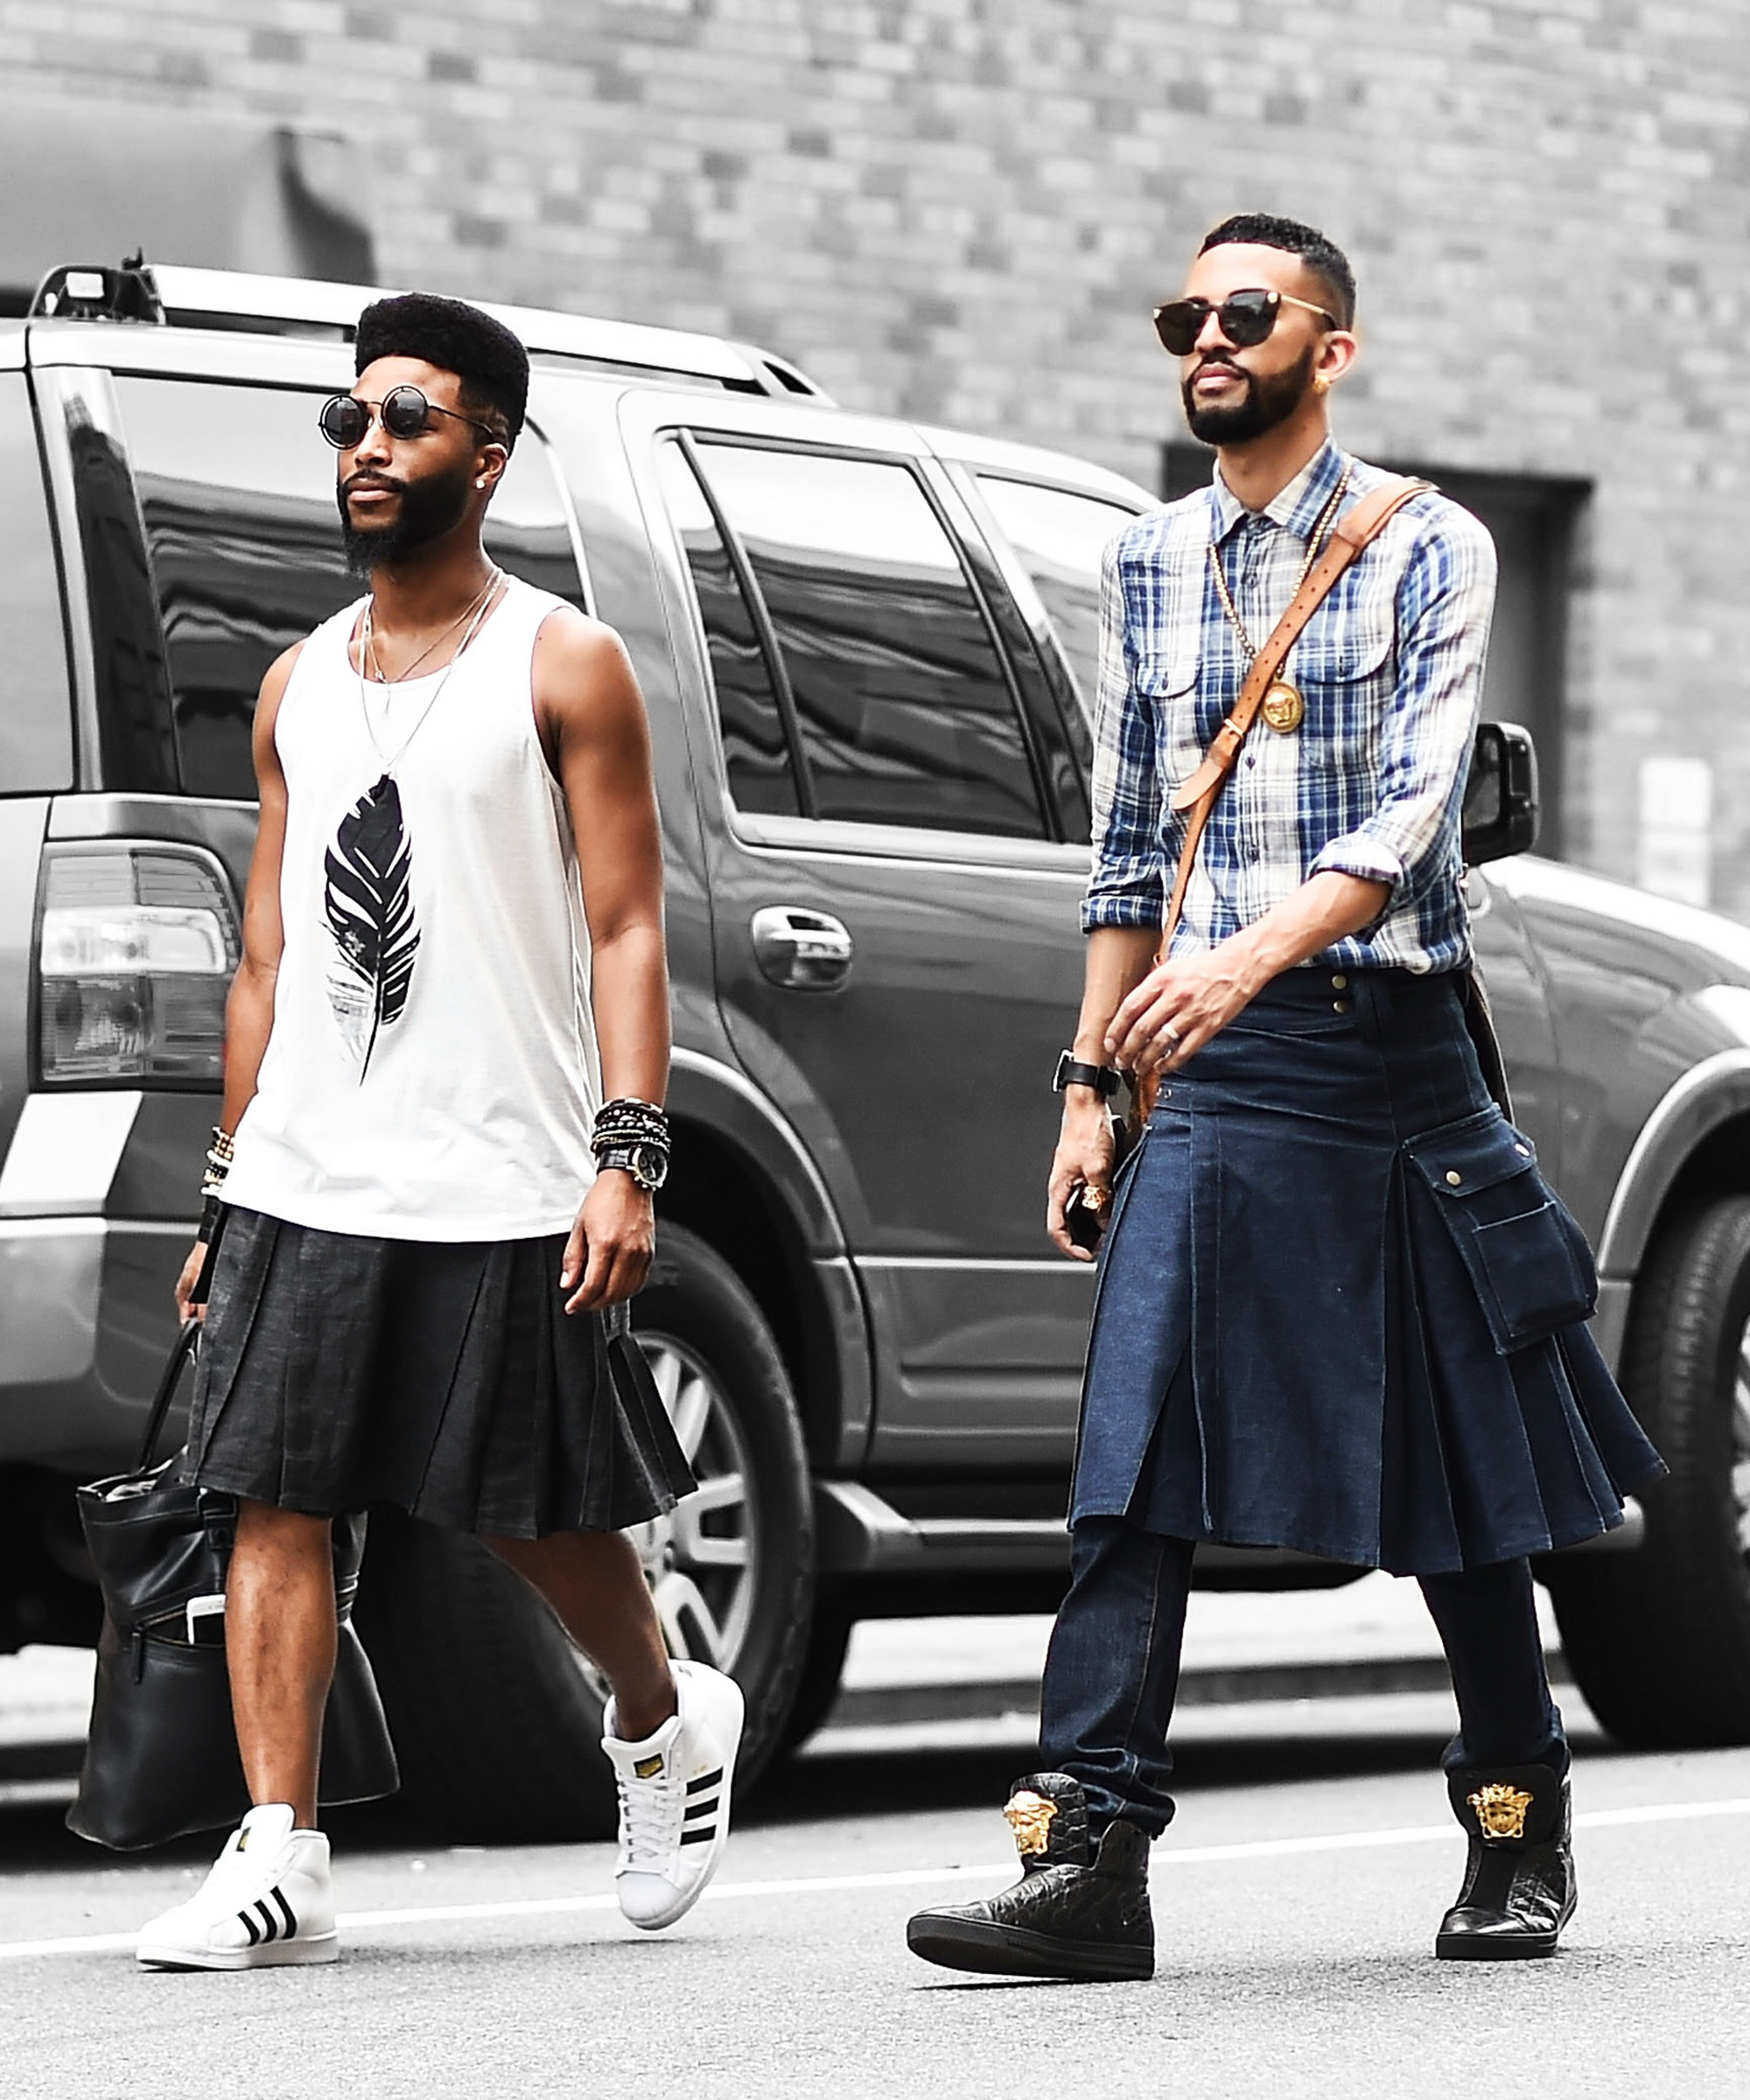 d1d6d6e763 Why Genderless Fashion Is So Important — & Why You Should Be Paying  Attention